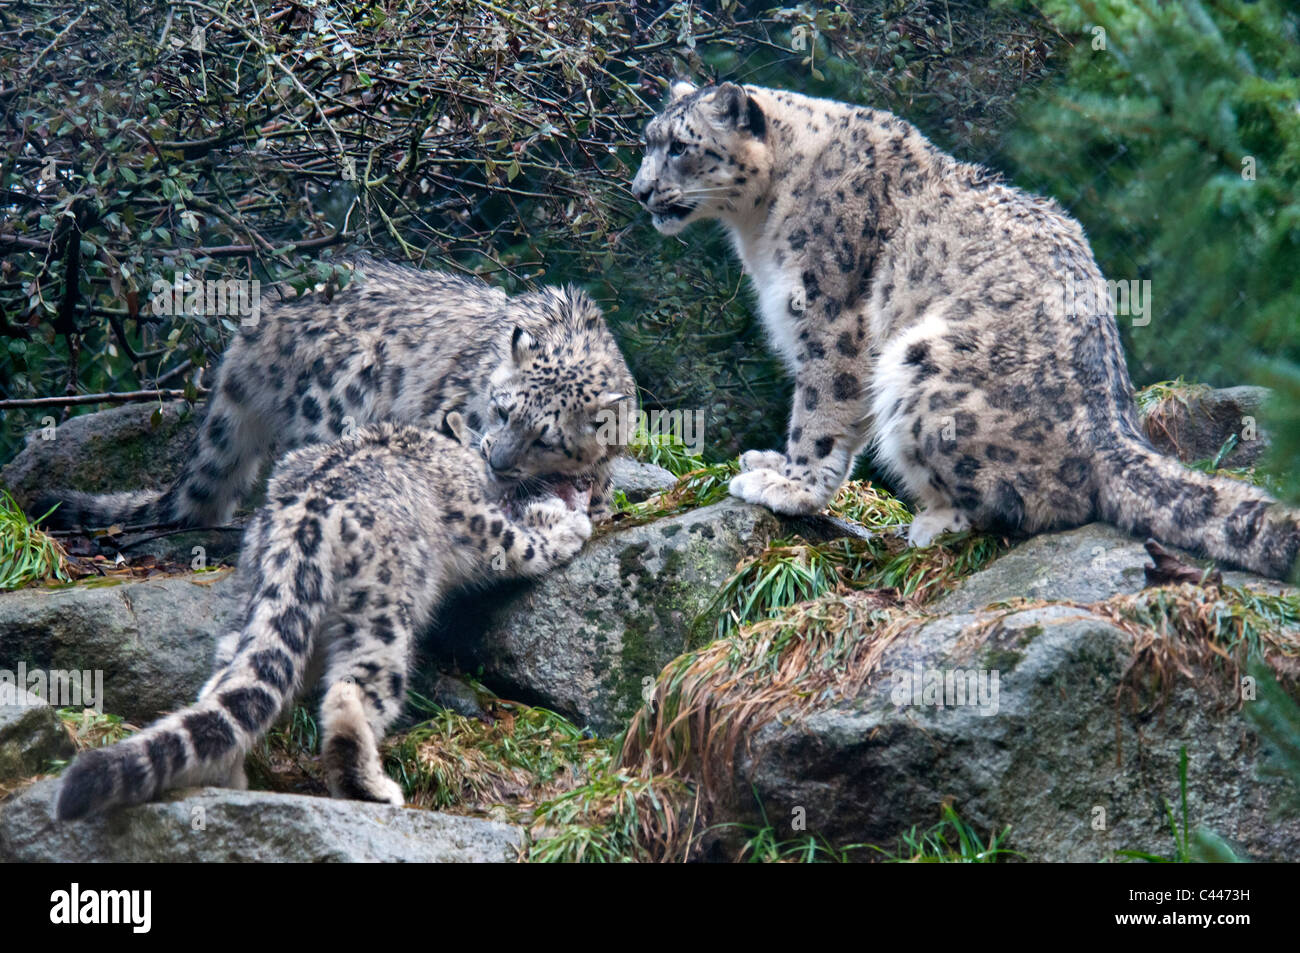 IRTI - funny picture #256 - tags: snow leopards tail mouth bites